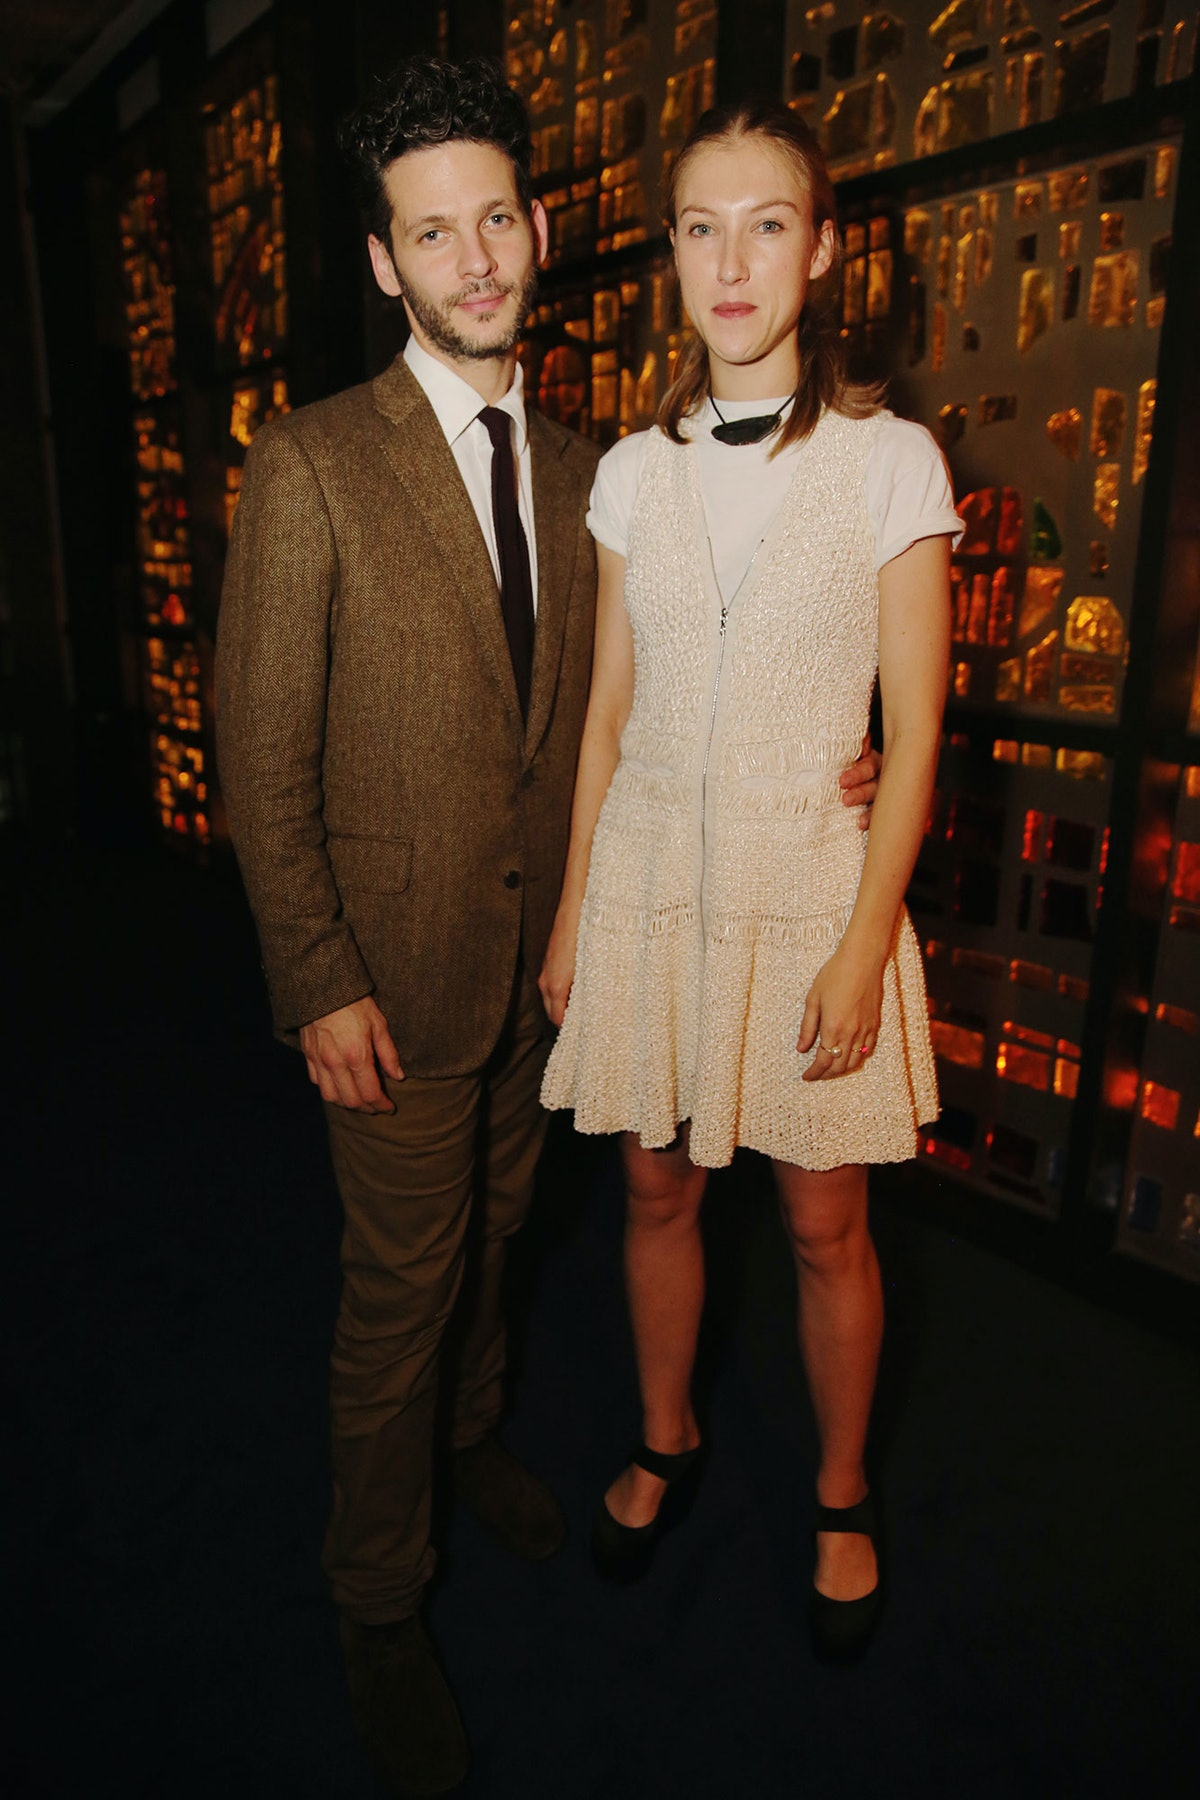 Benjamin and Lucie Paulin attend Louis Vuitton's celebration of Pierre Paulin's Playing with Shapes